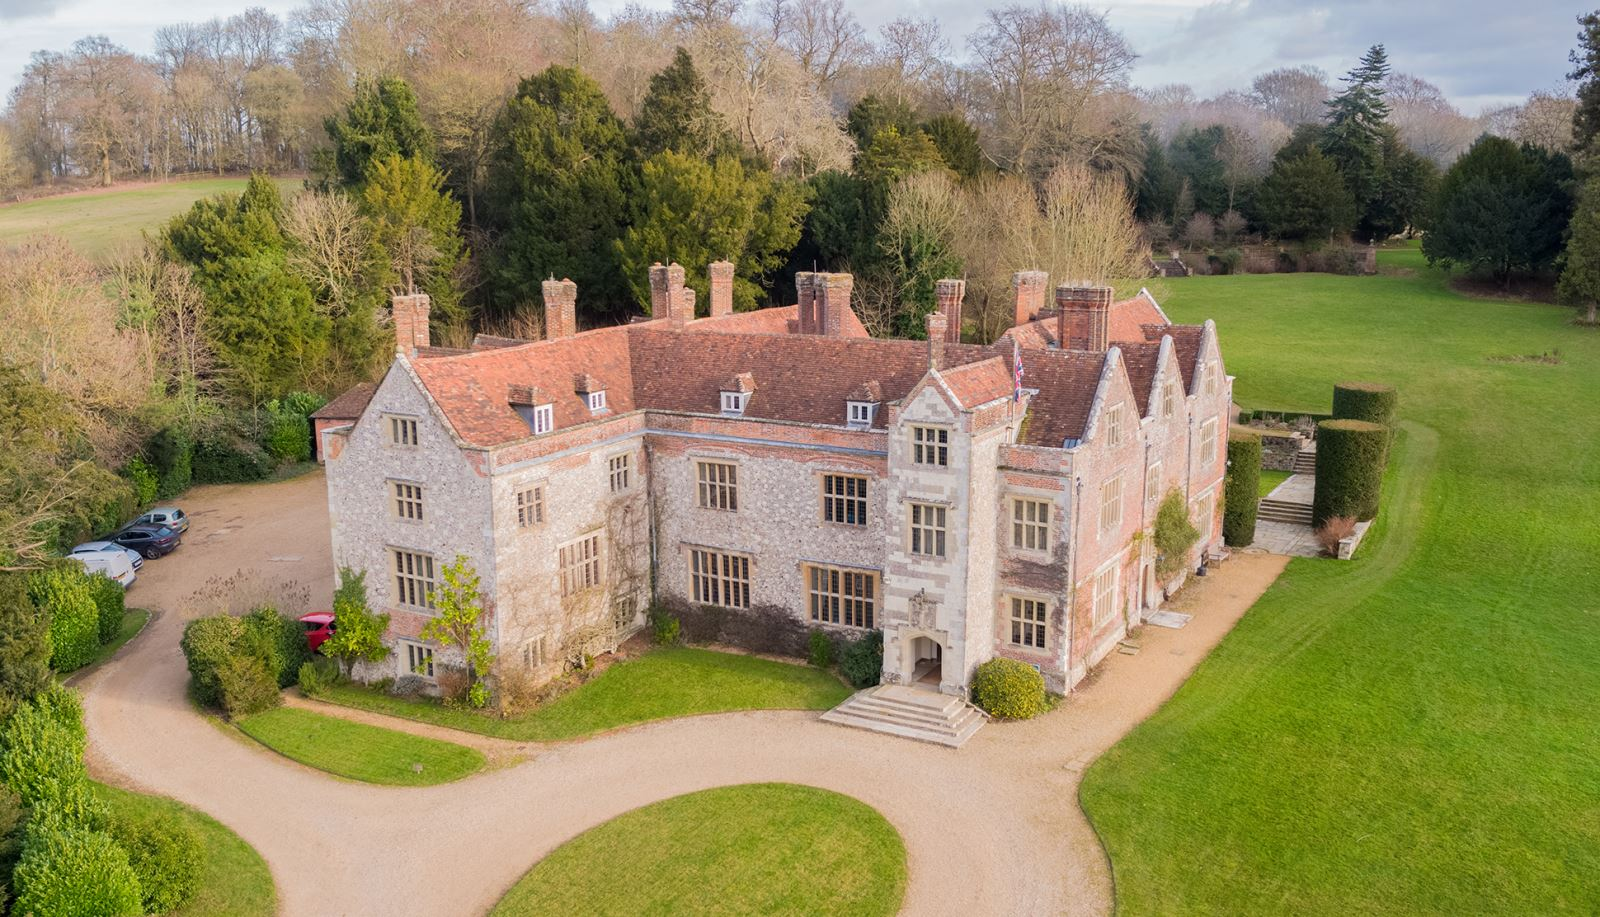 Chawton House in the Village of Chawton, Hampshire